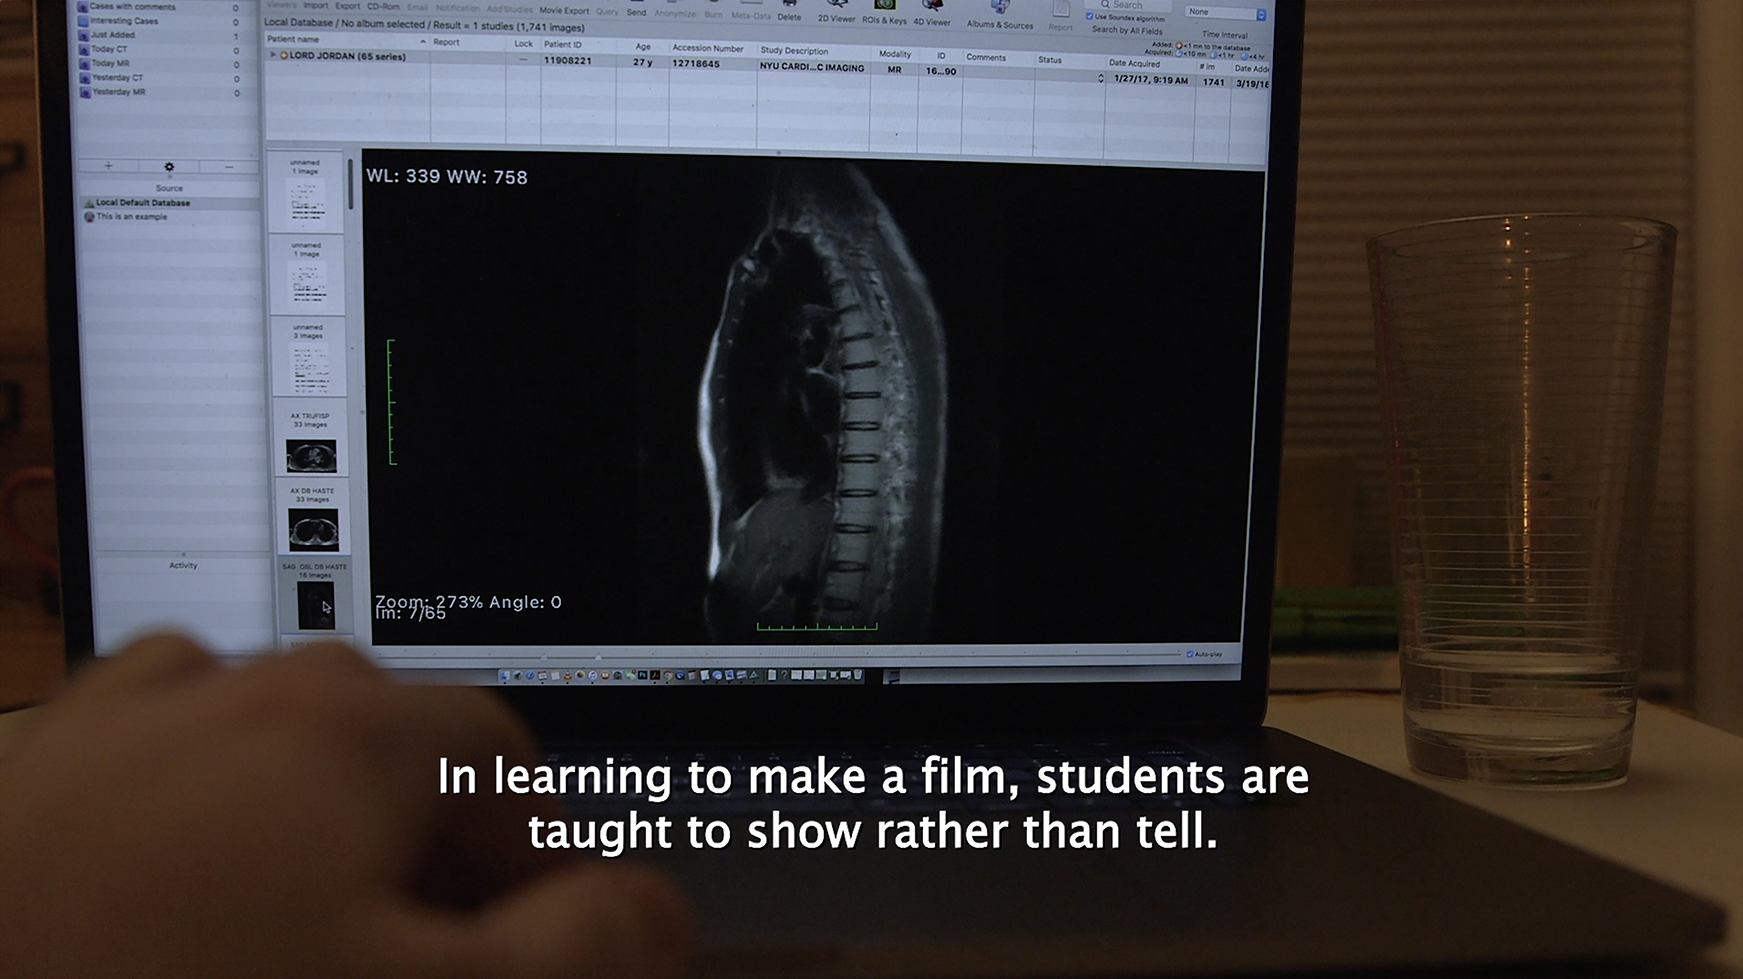 """The inside of a body, including a spine and other organs, appears on a laptop screen. A white person's hand reaches toward the laptop's keyboard. On top of the hand, a caption reads: """"In learning to make a film, students are taught to show rather than tell."""""""